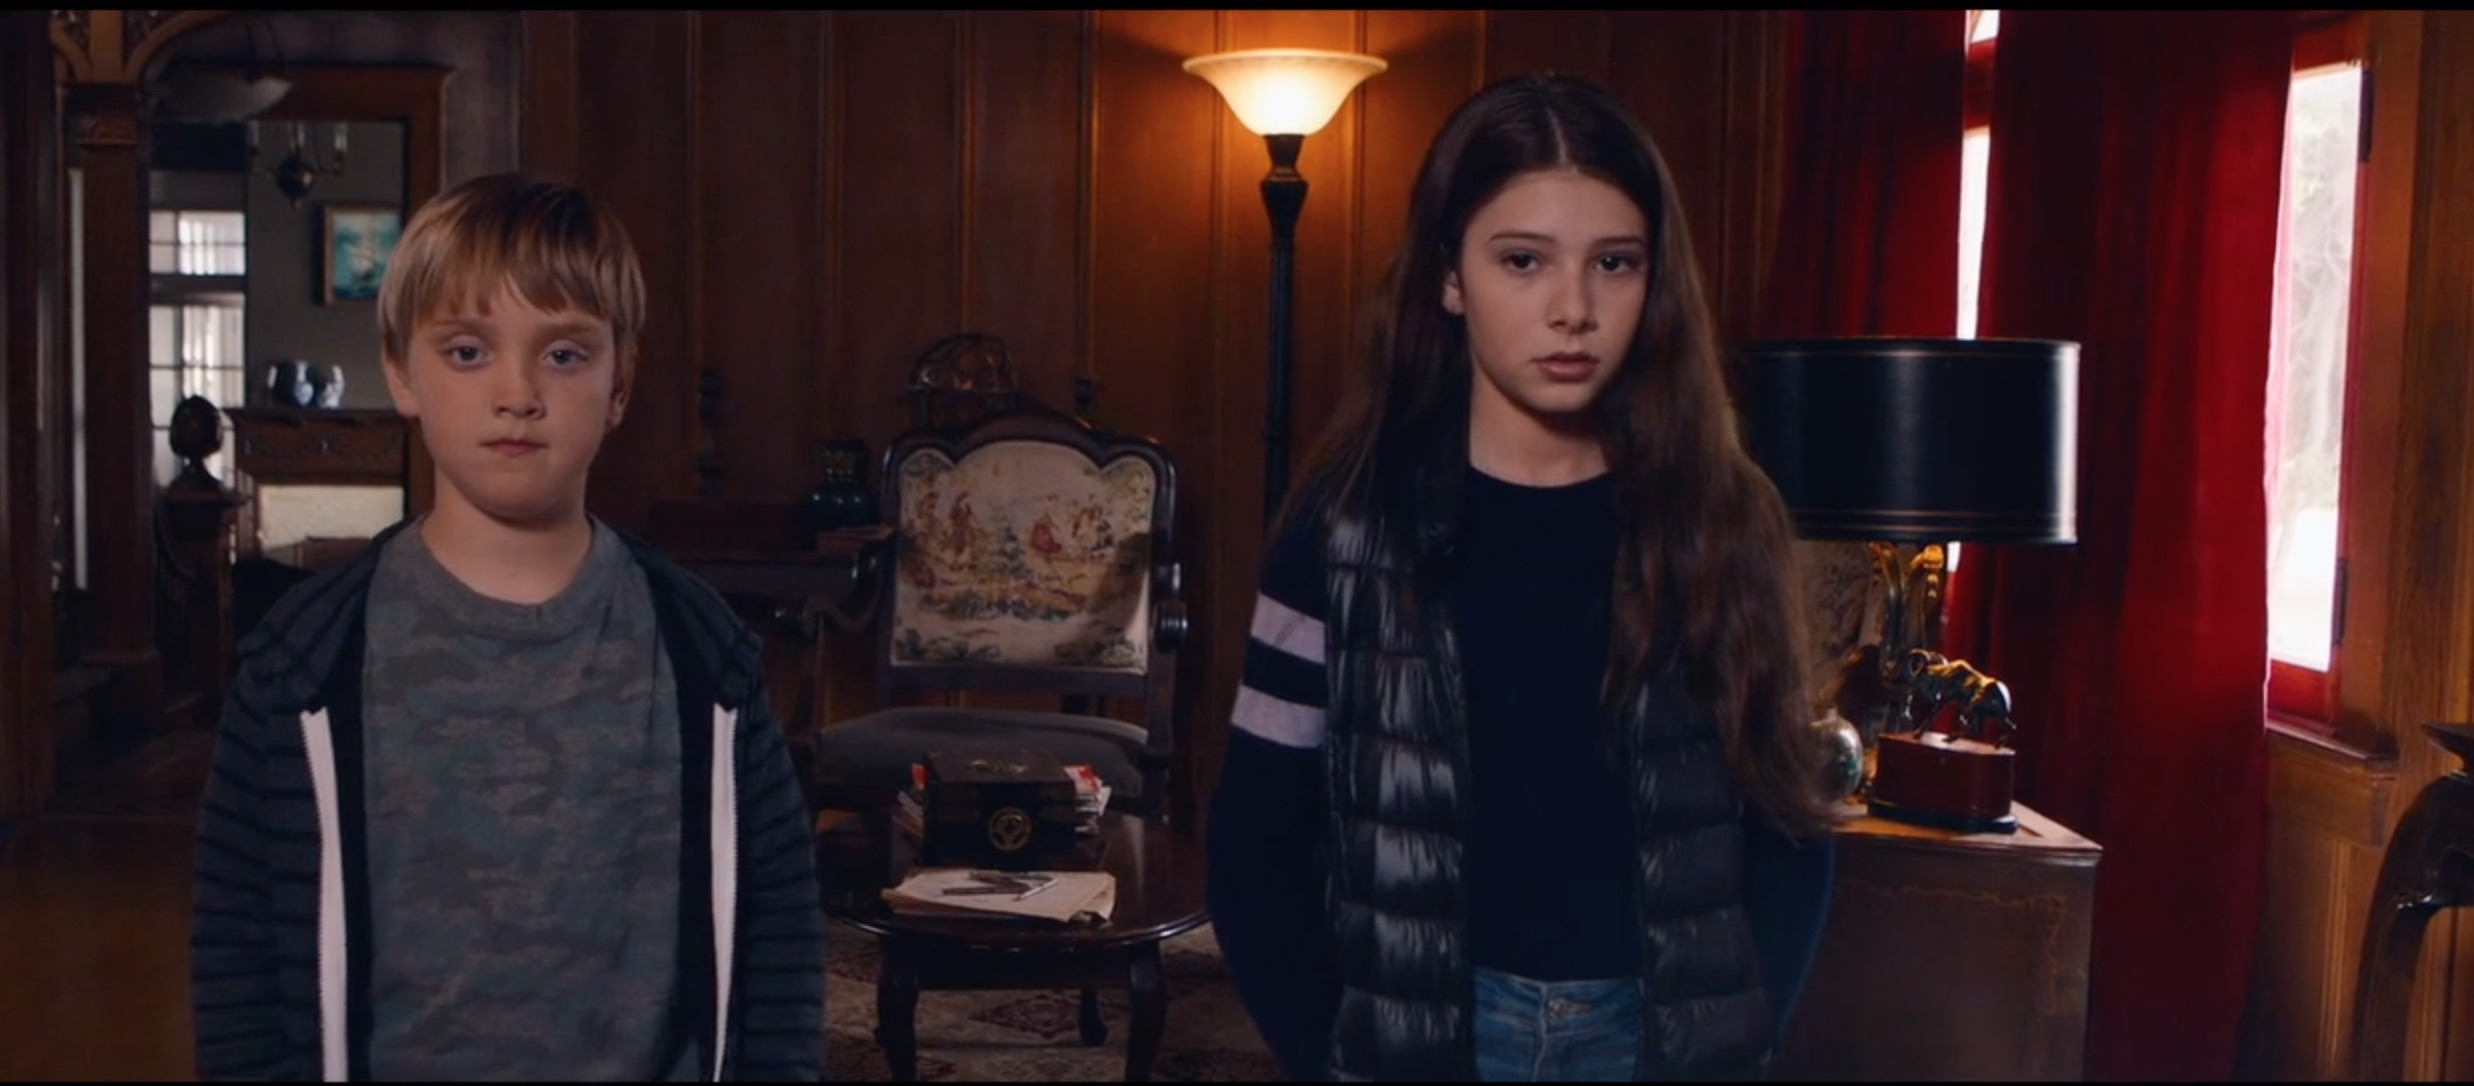 Mackenzie Moss and O'Neill Monaghan in Let Us In (2021)